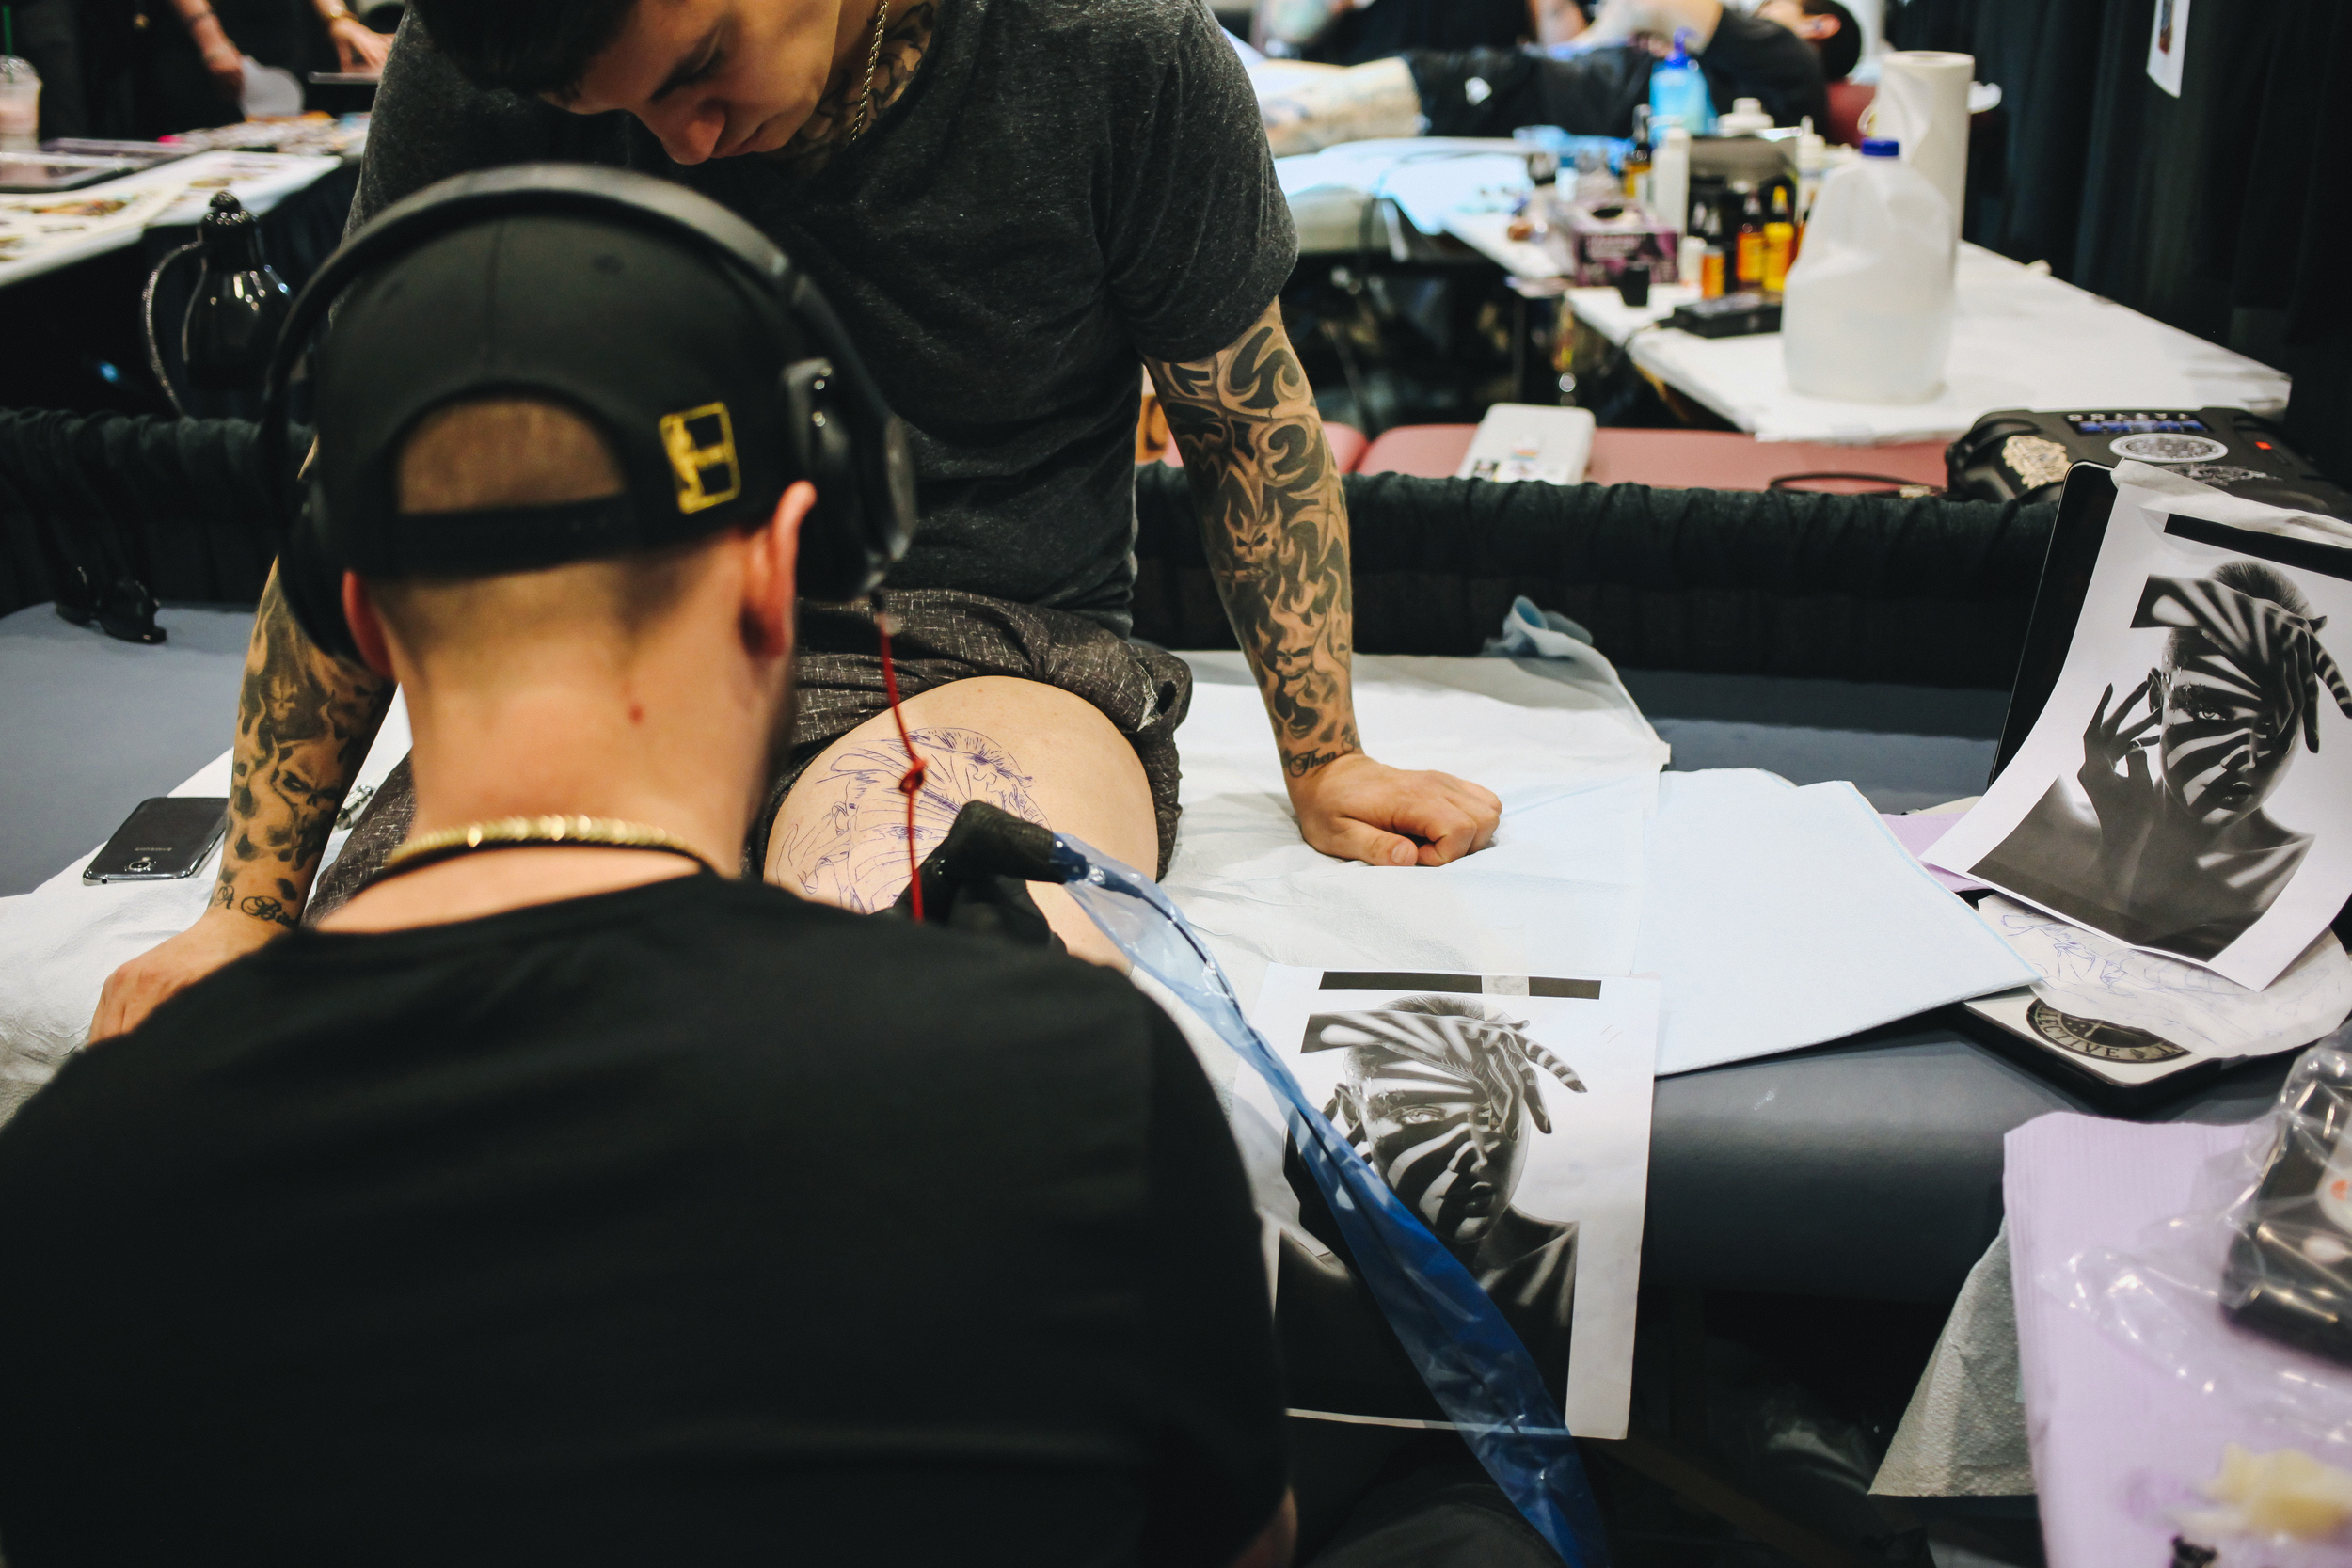 VancouverTattooConvention-4.jpg